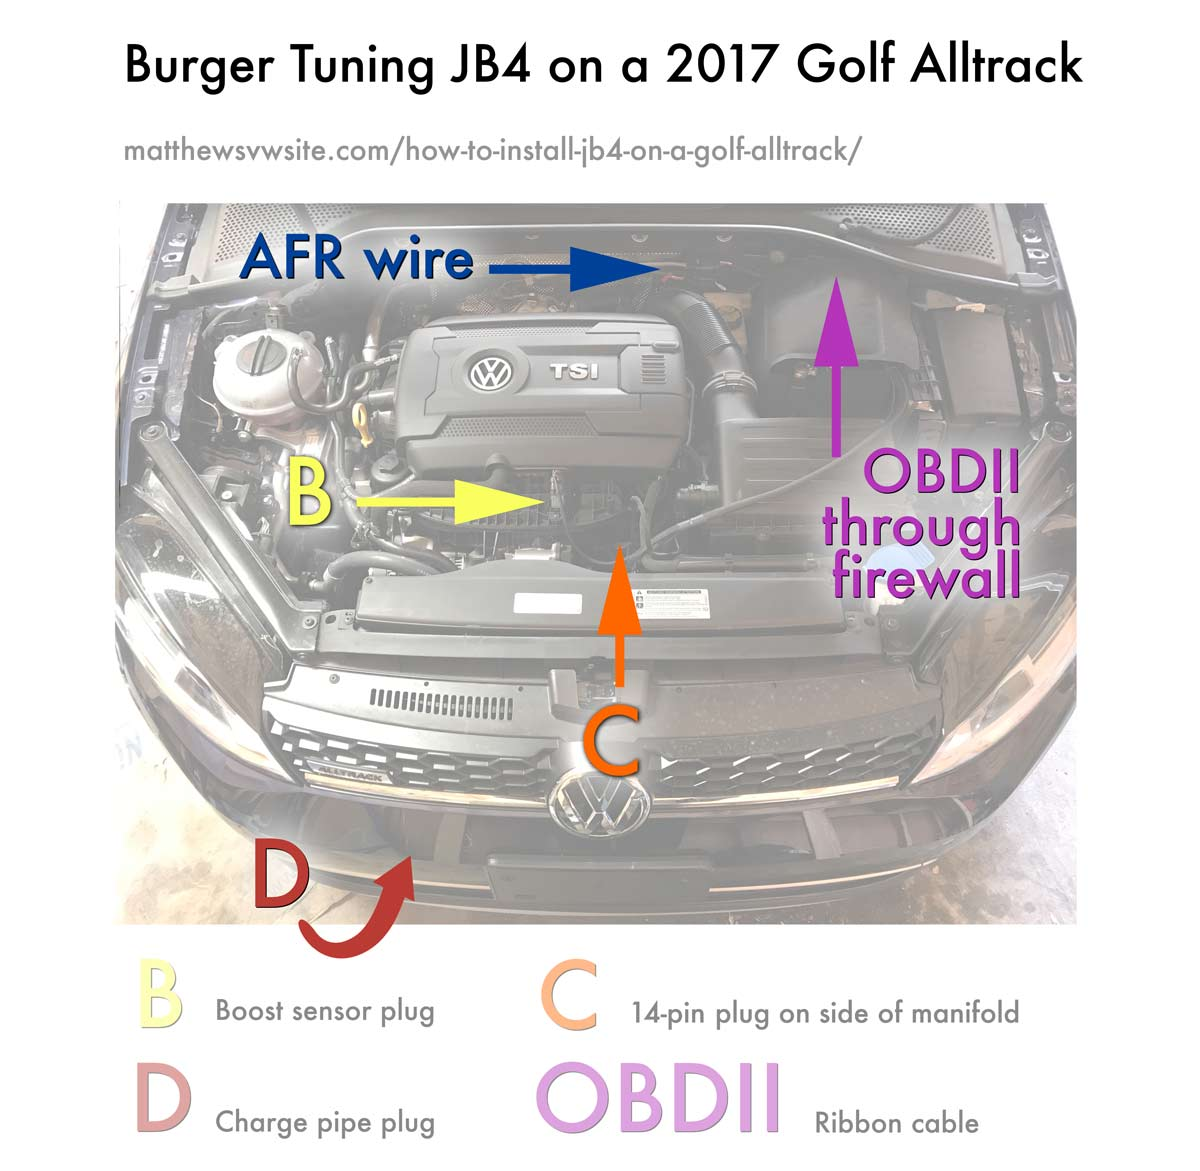 jb4 install overview plugs 3 - How to Install JB4 on a Golf Alltrack